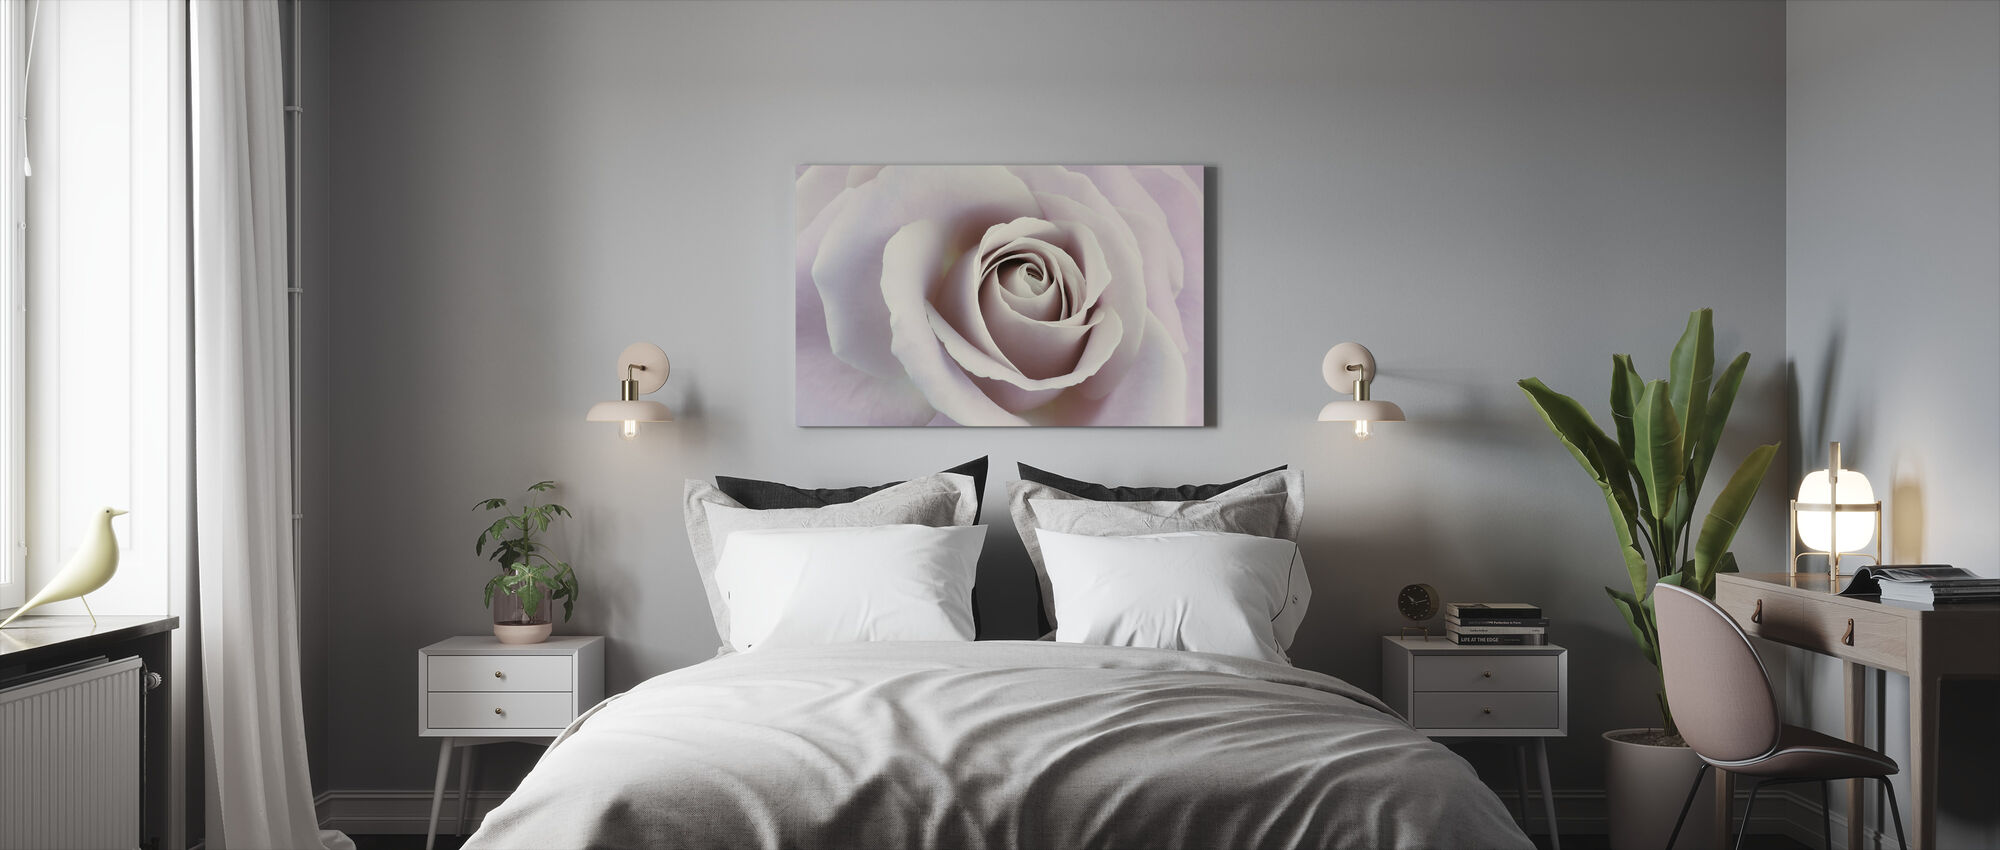 Soft Rose in Cool Shades - Canvas print - Bedroom